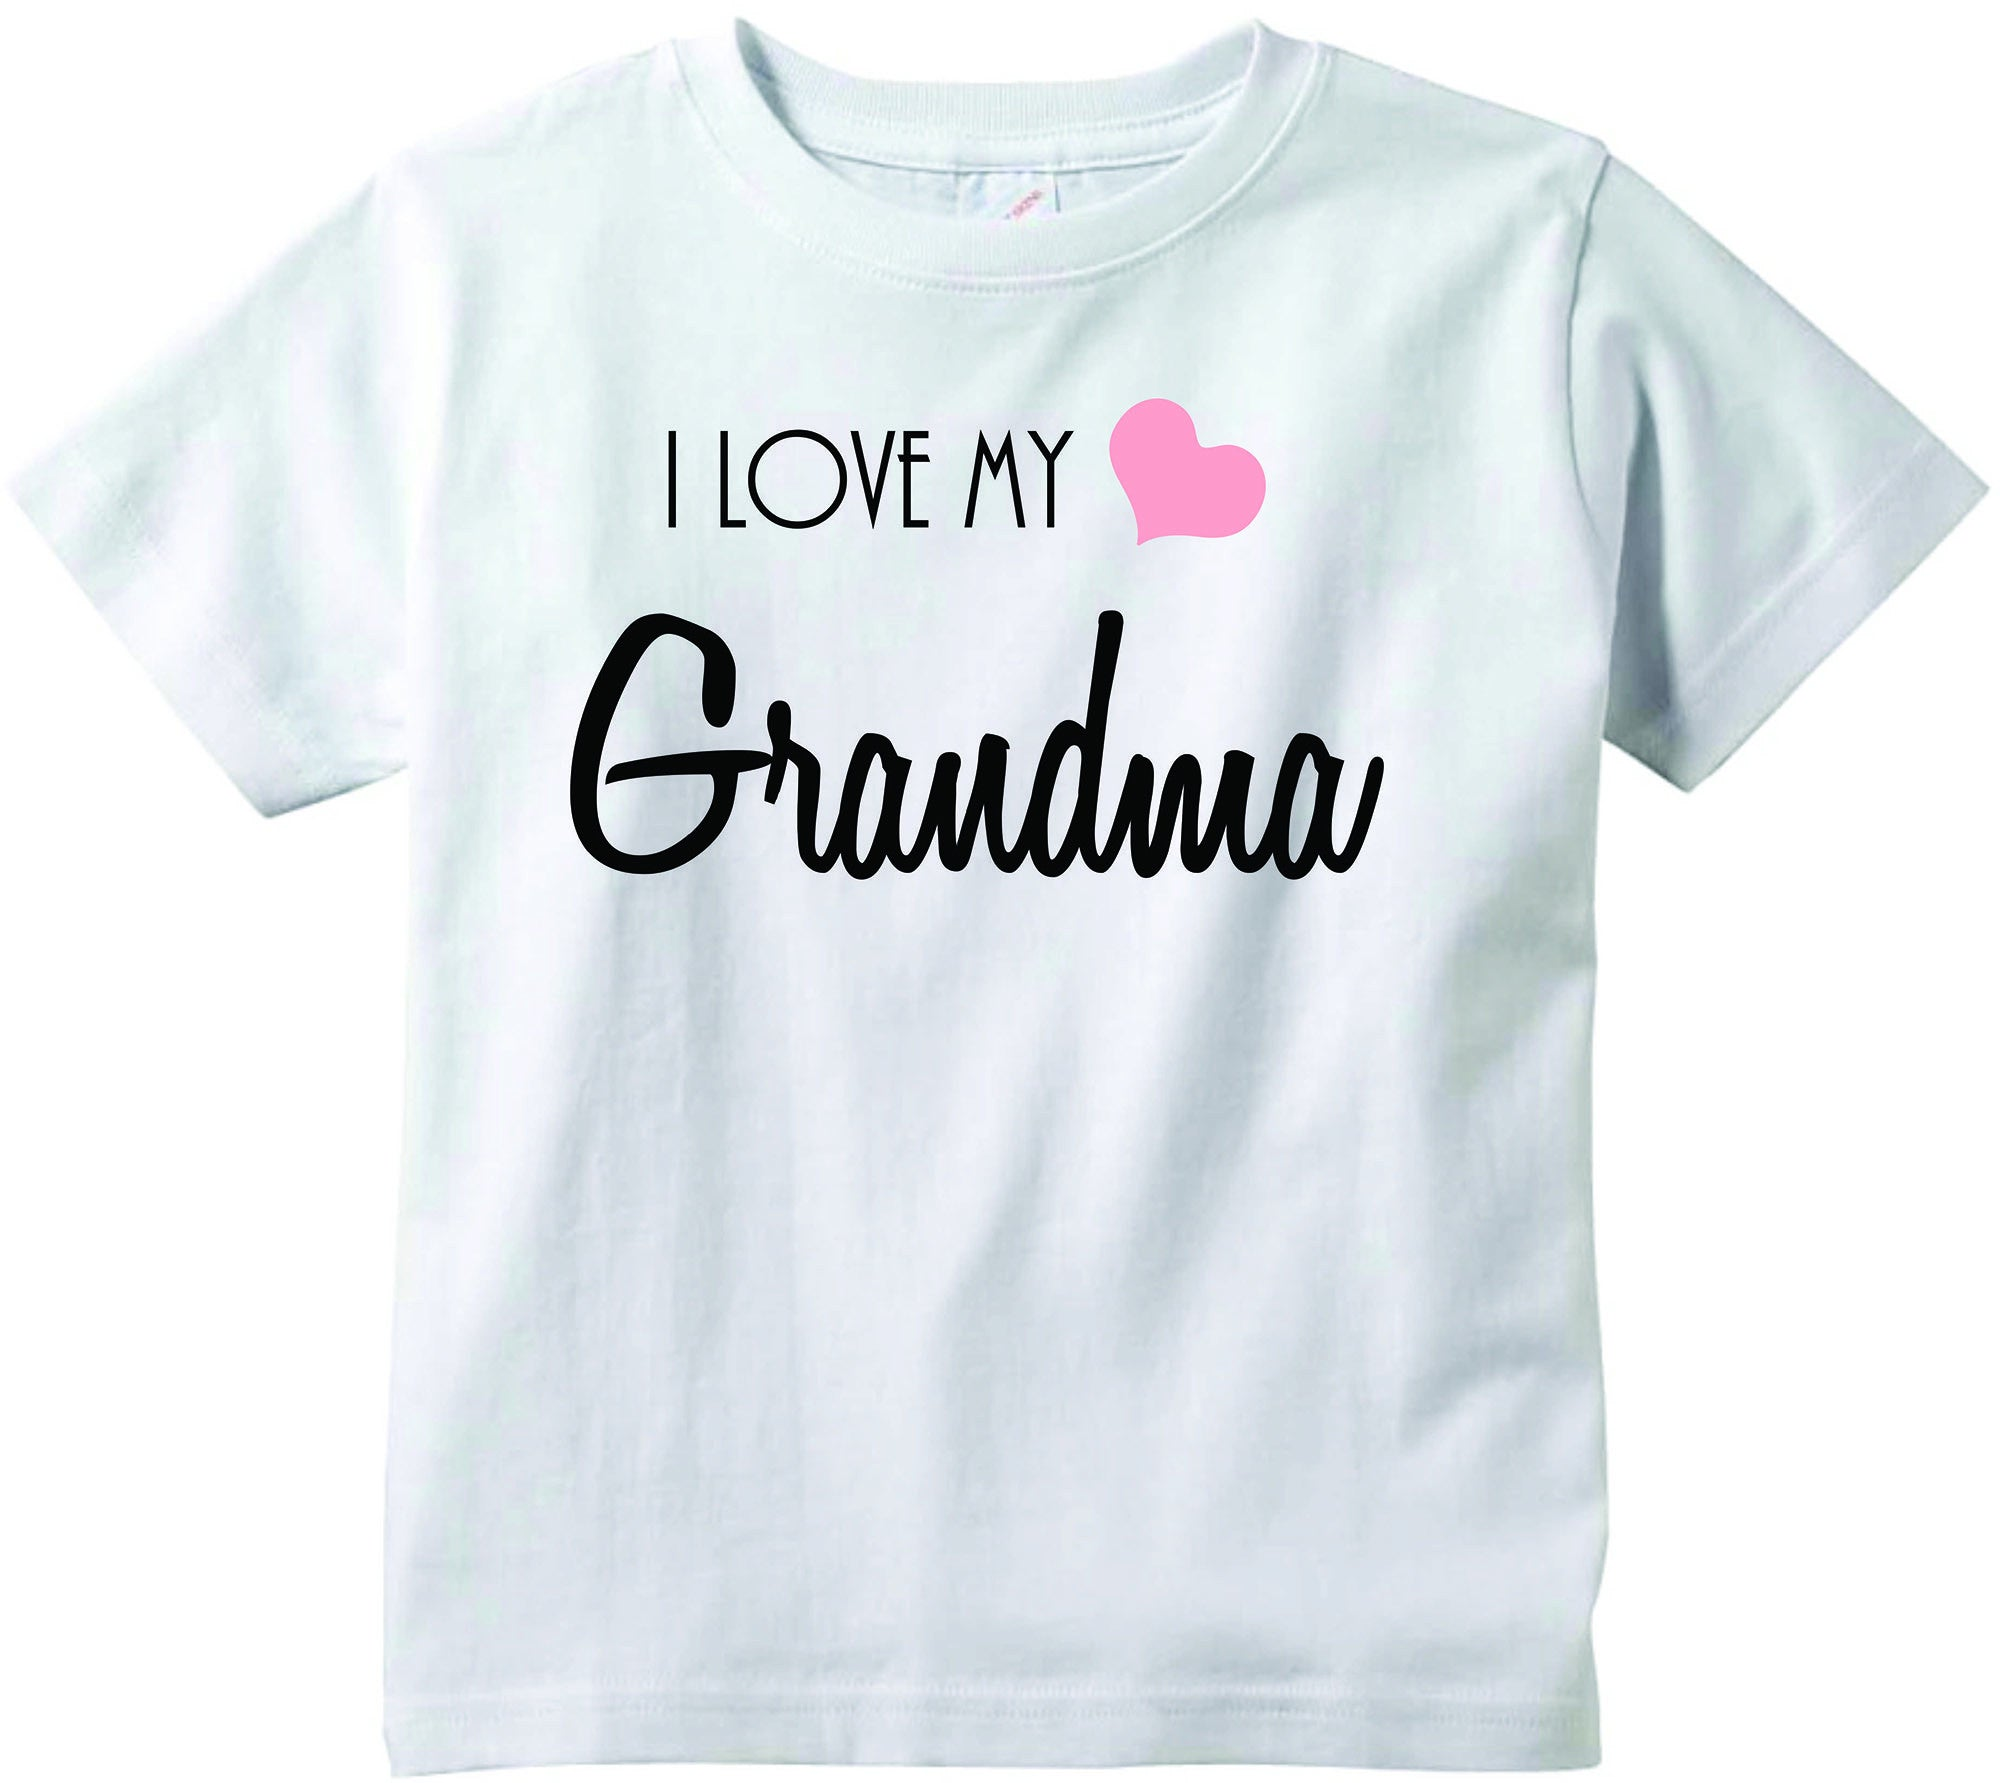 Baby girls I love my Grandma cute infant clothing funny baby clothes